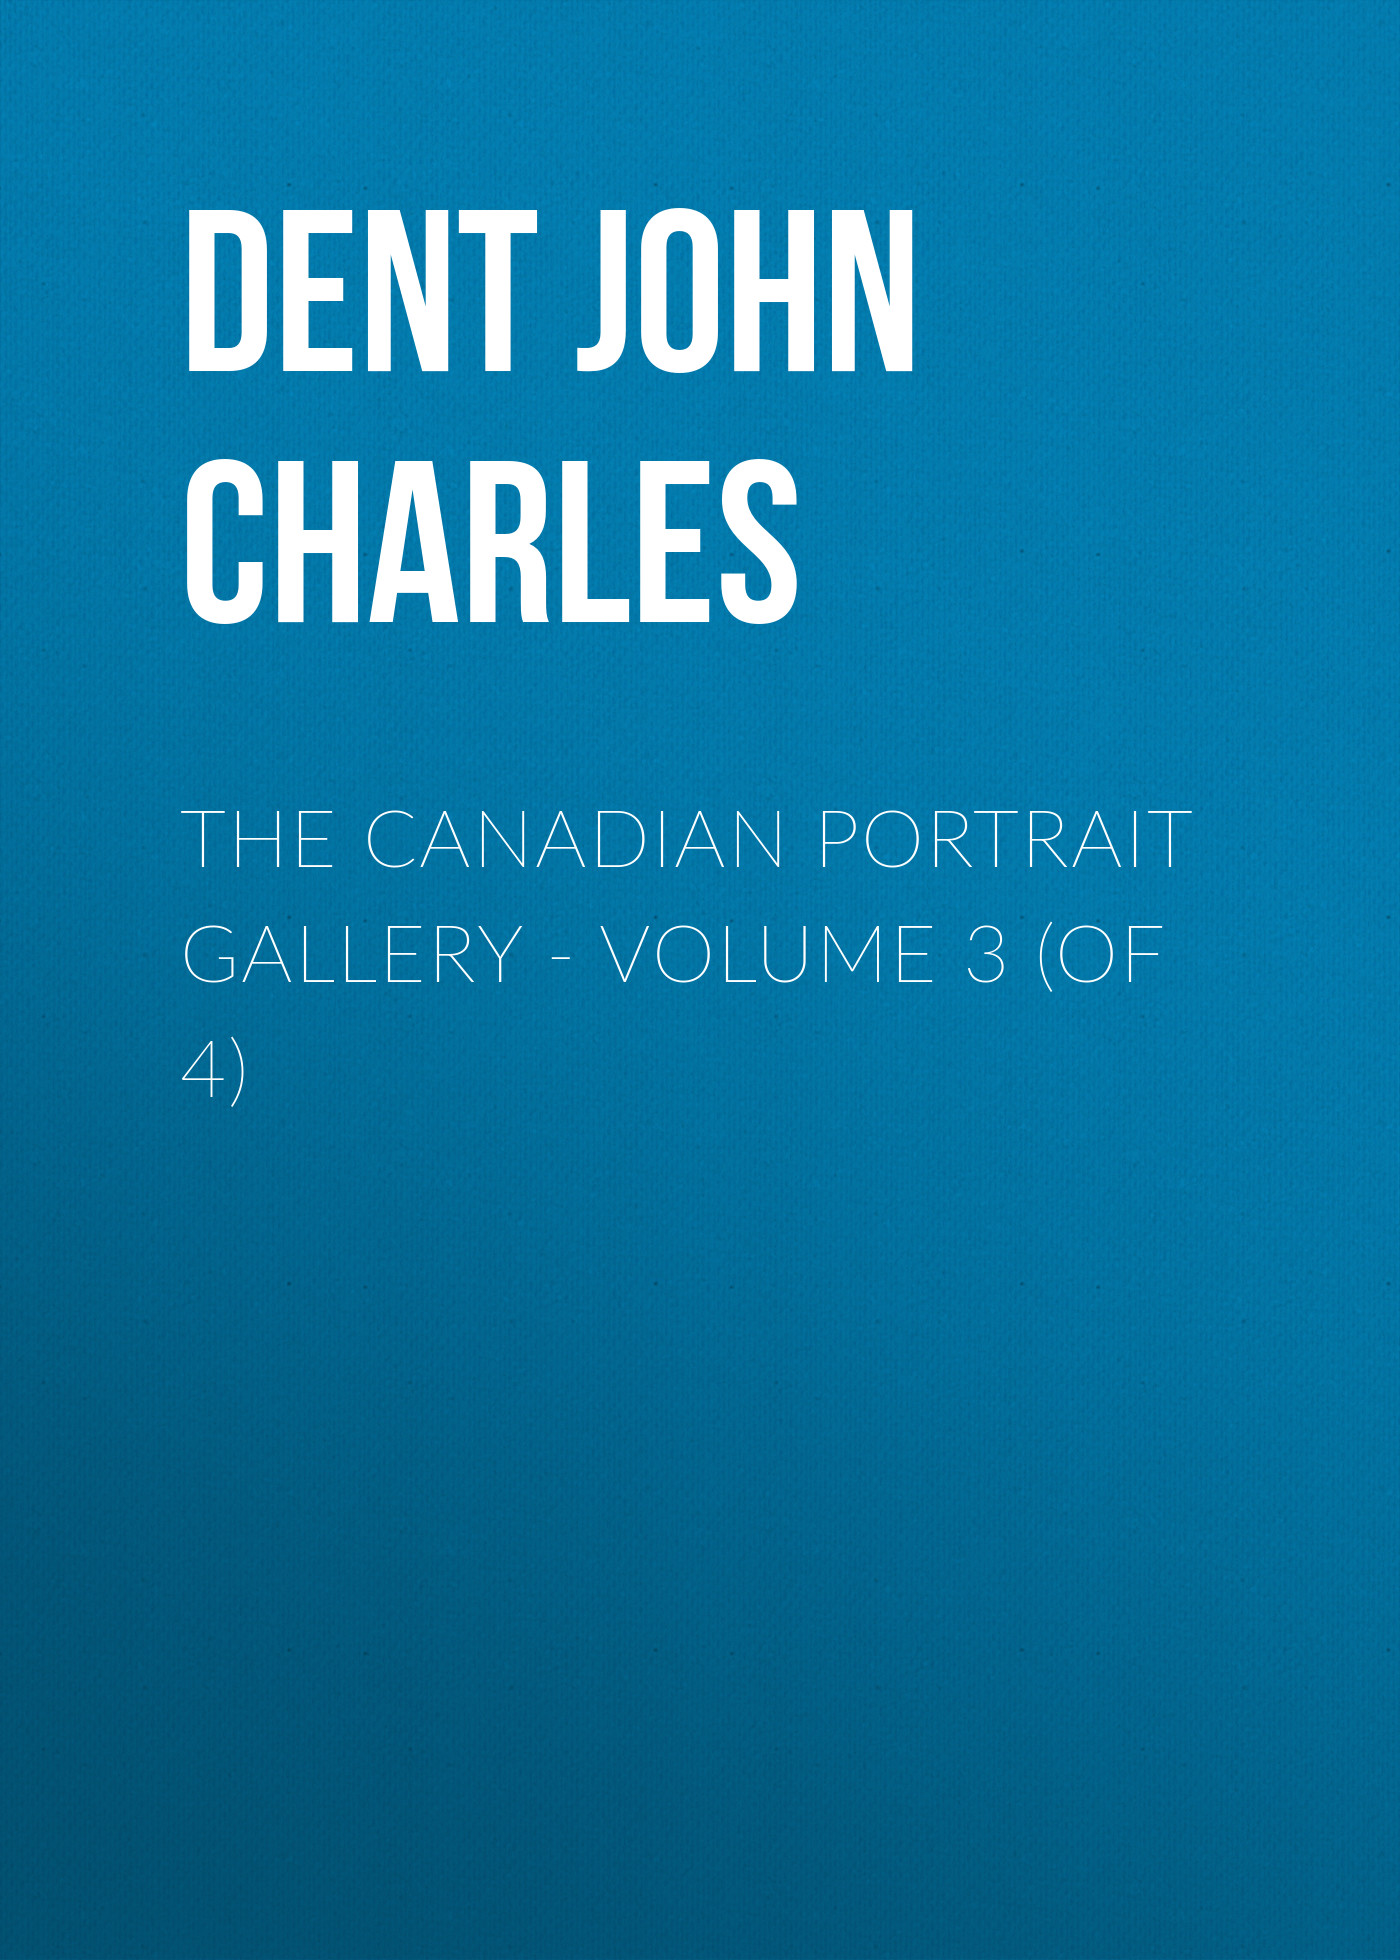 Dent John Charles The Canadian Portrait Gallery - Volume 3 (of 4) long john silver volume 4 guiana capac